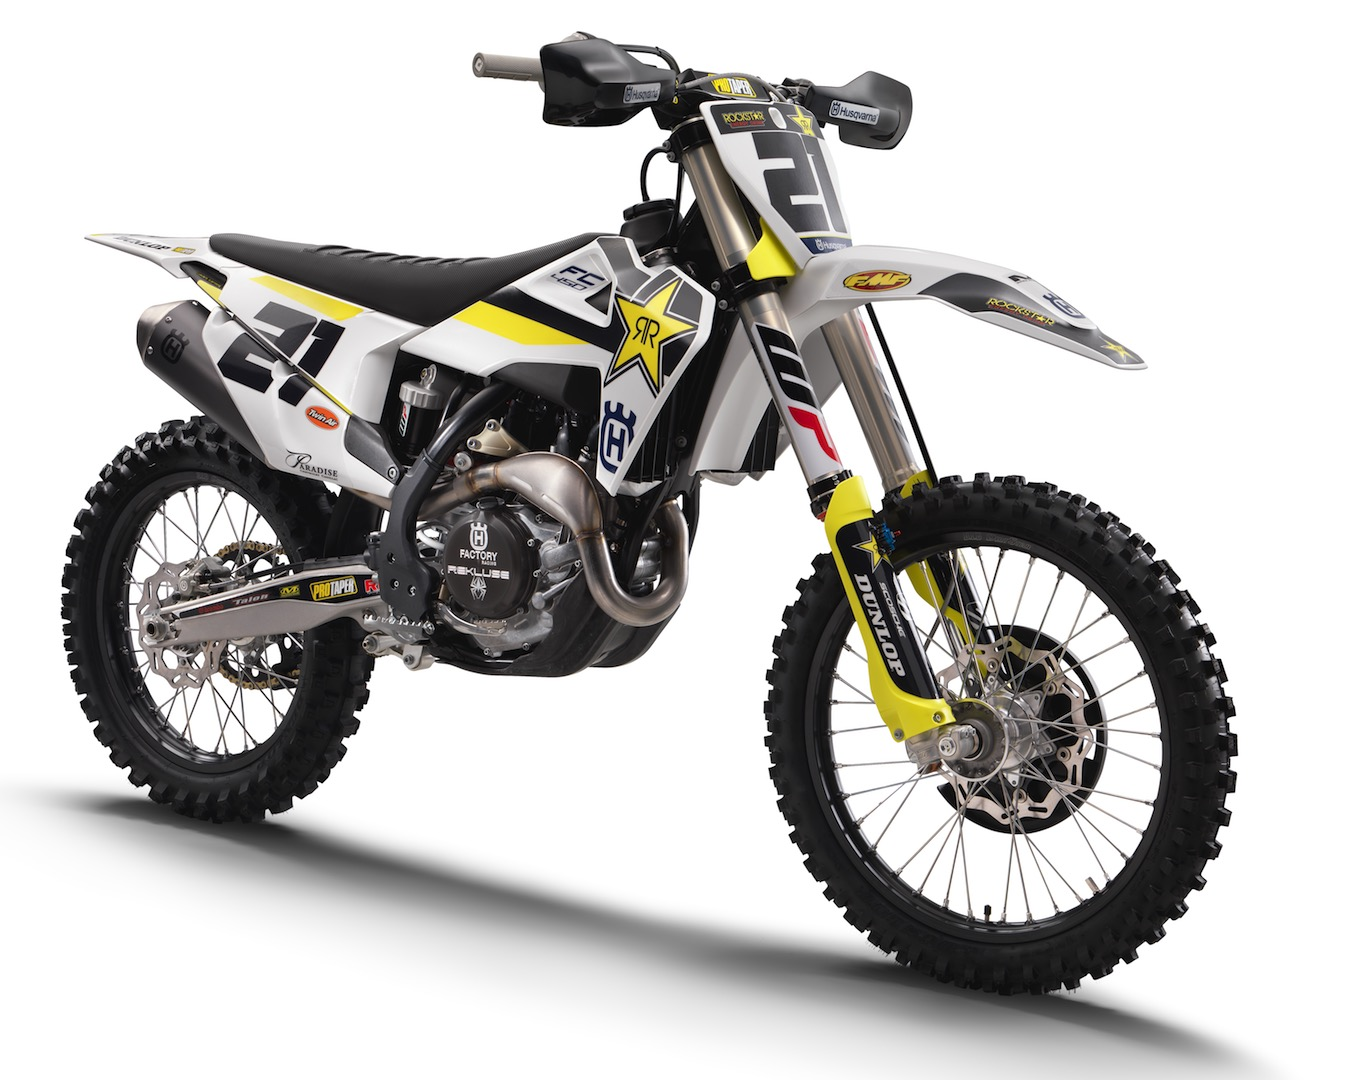 2018 Husqvarna FC 450 Rockstar Edition revealed - rocking up for the new year!